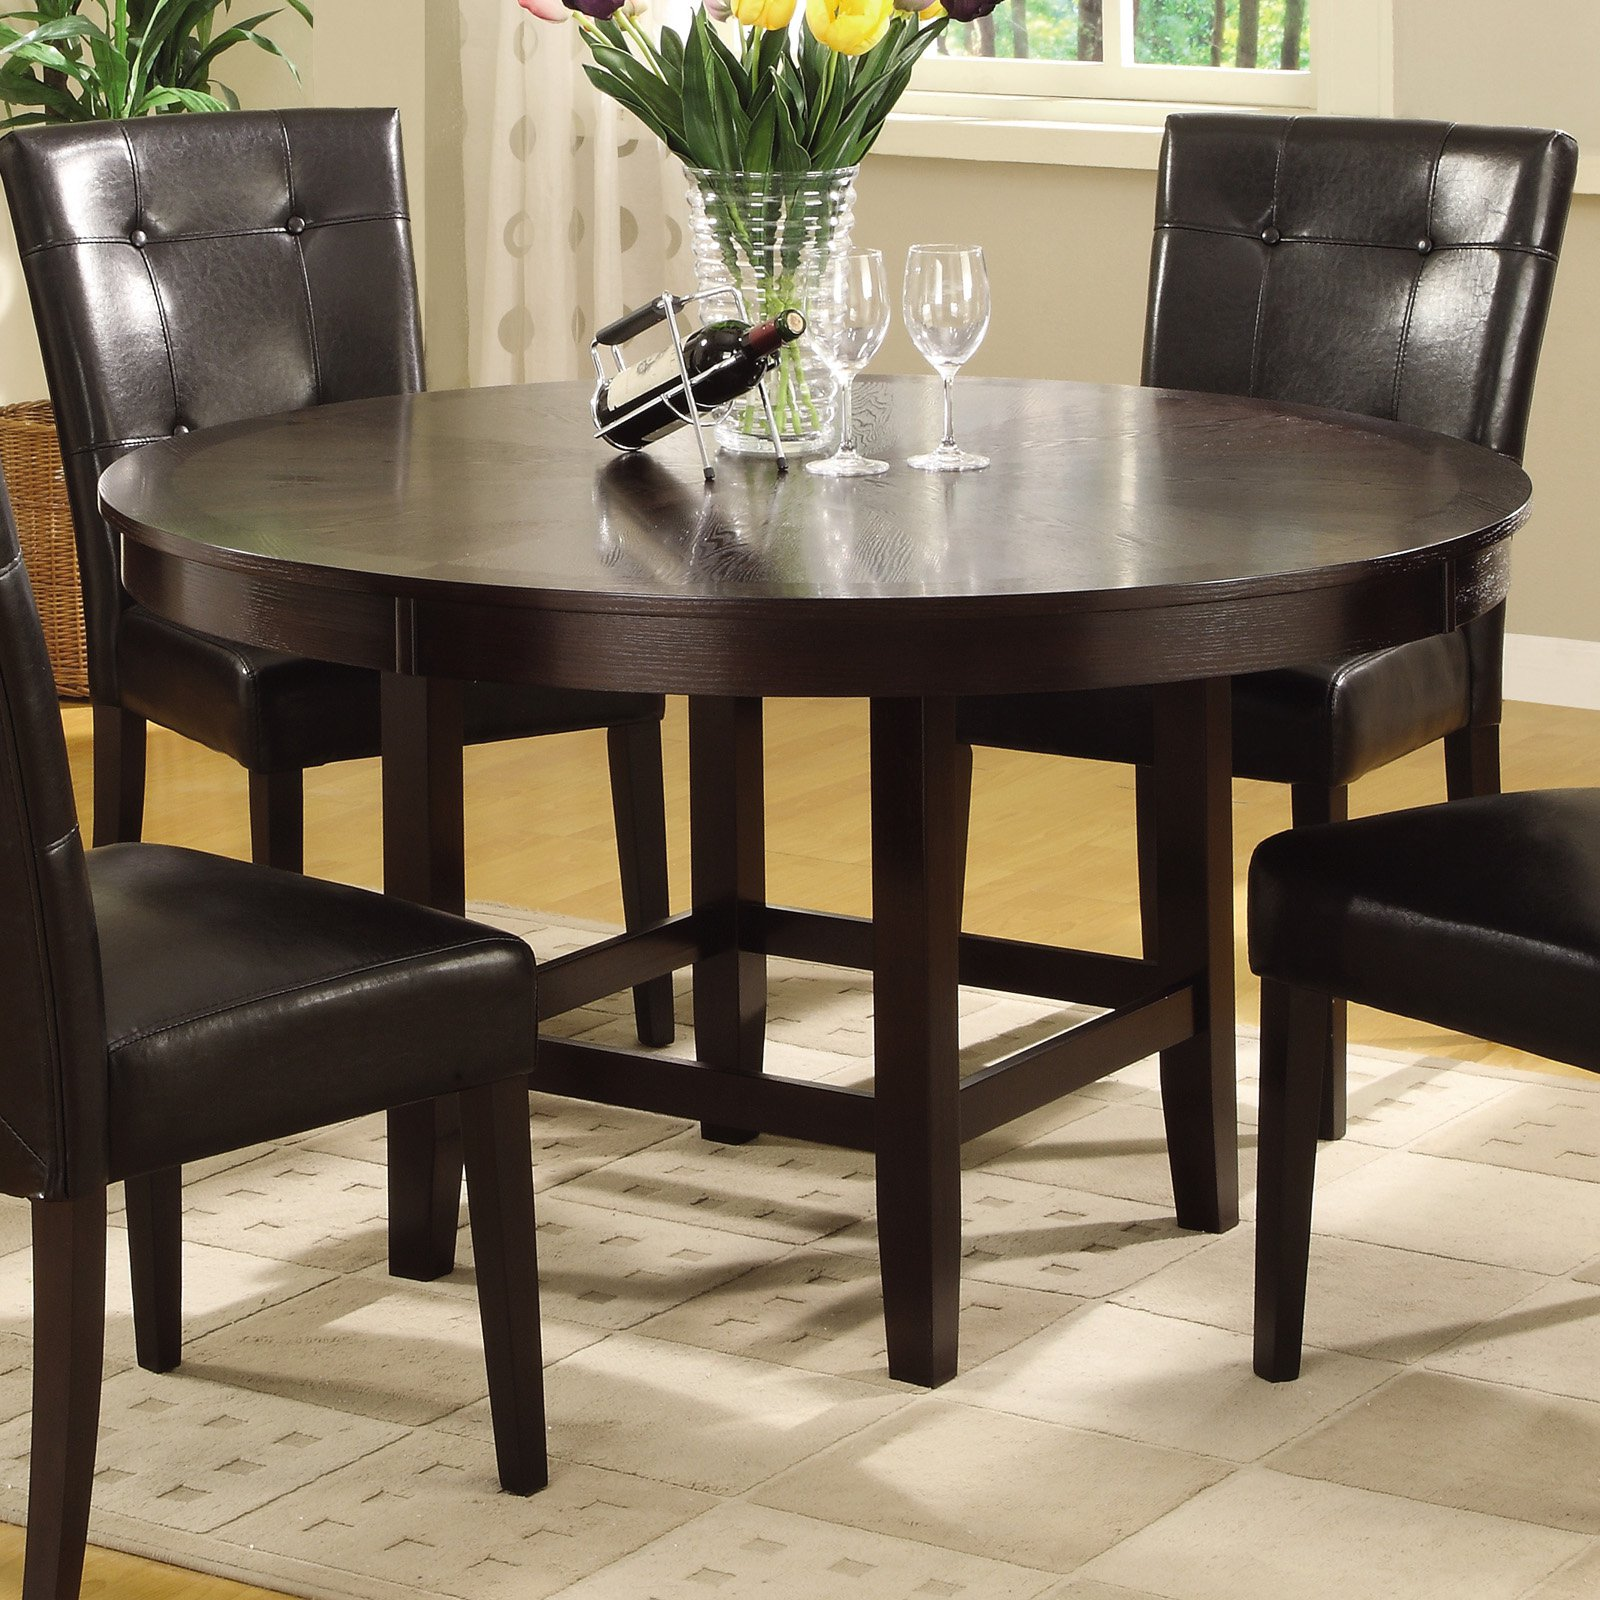 Bossa 48 in. Round Dining Table Dark Chocolate by Modus Furniture International